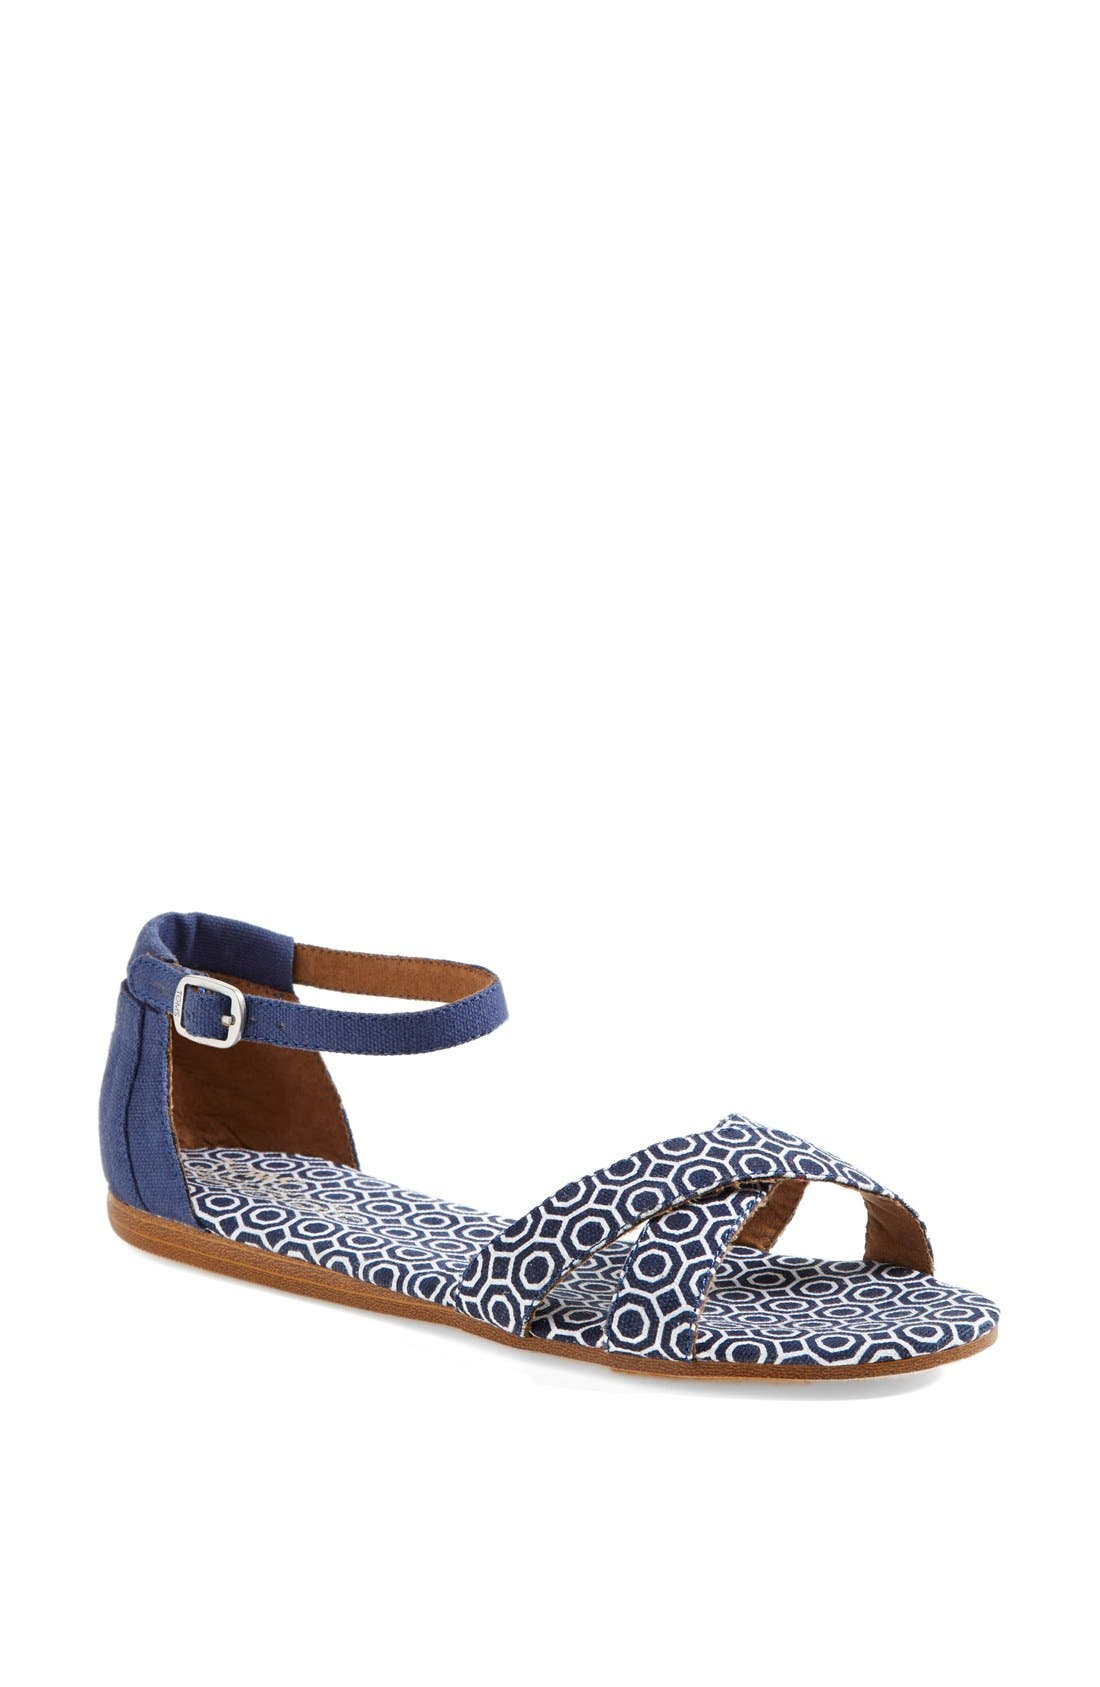 Alternate Image 1 Selected - TOMS 'Correa - Jonathan Adler' Sandal